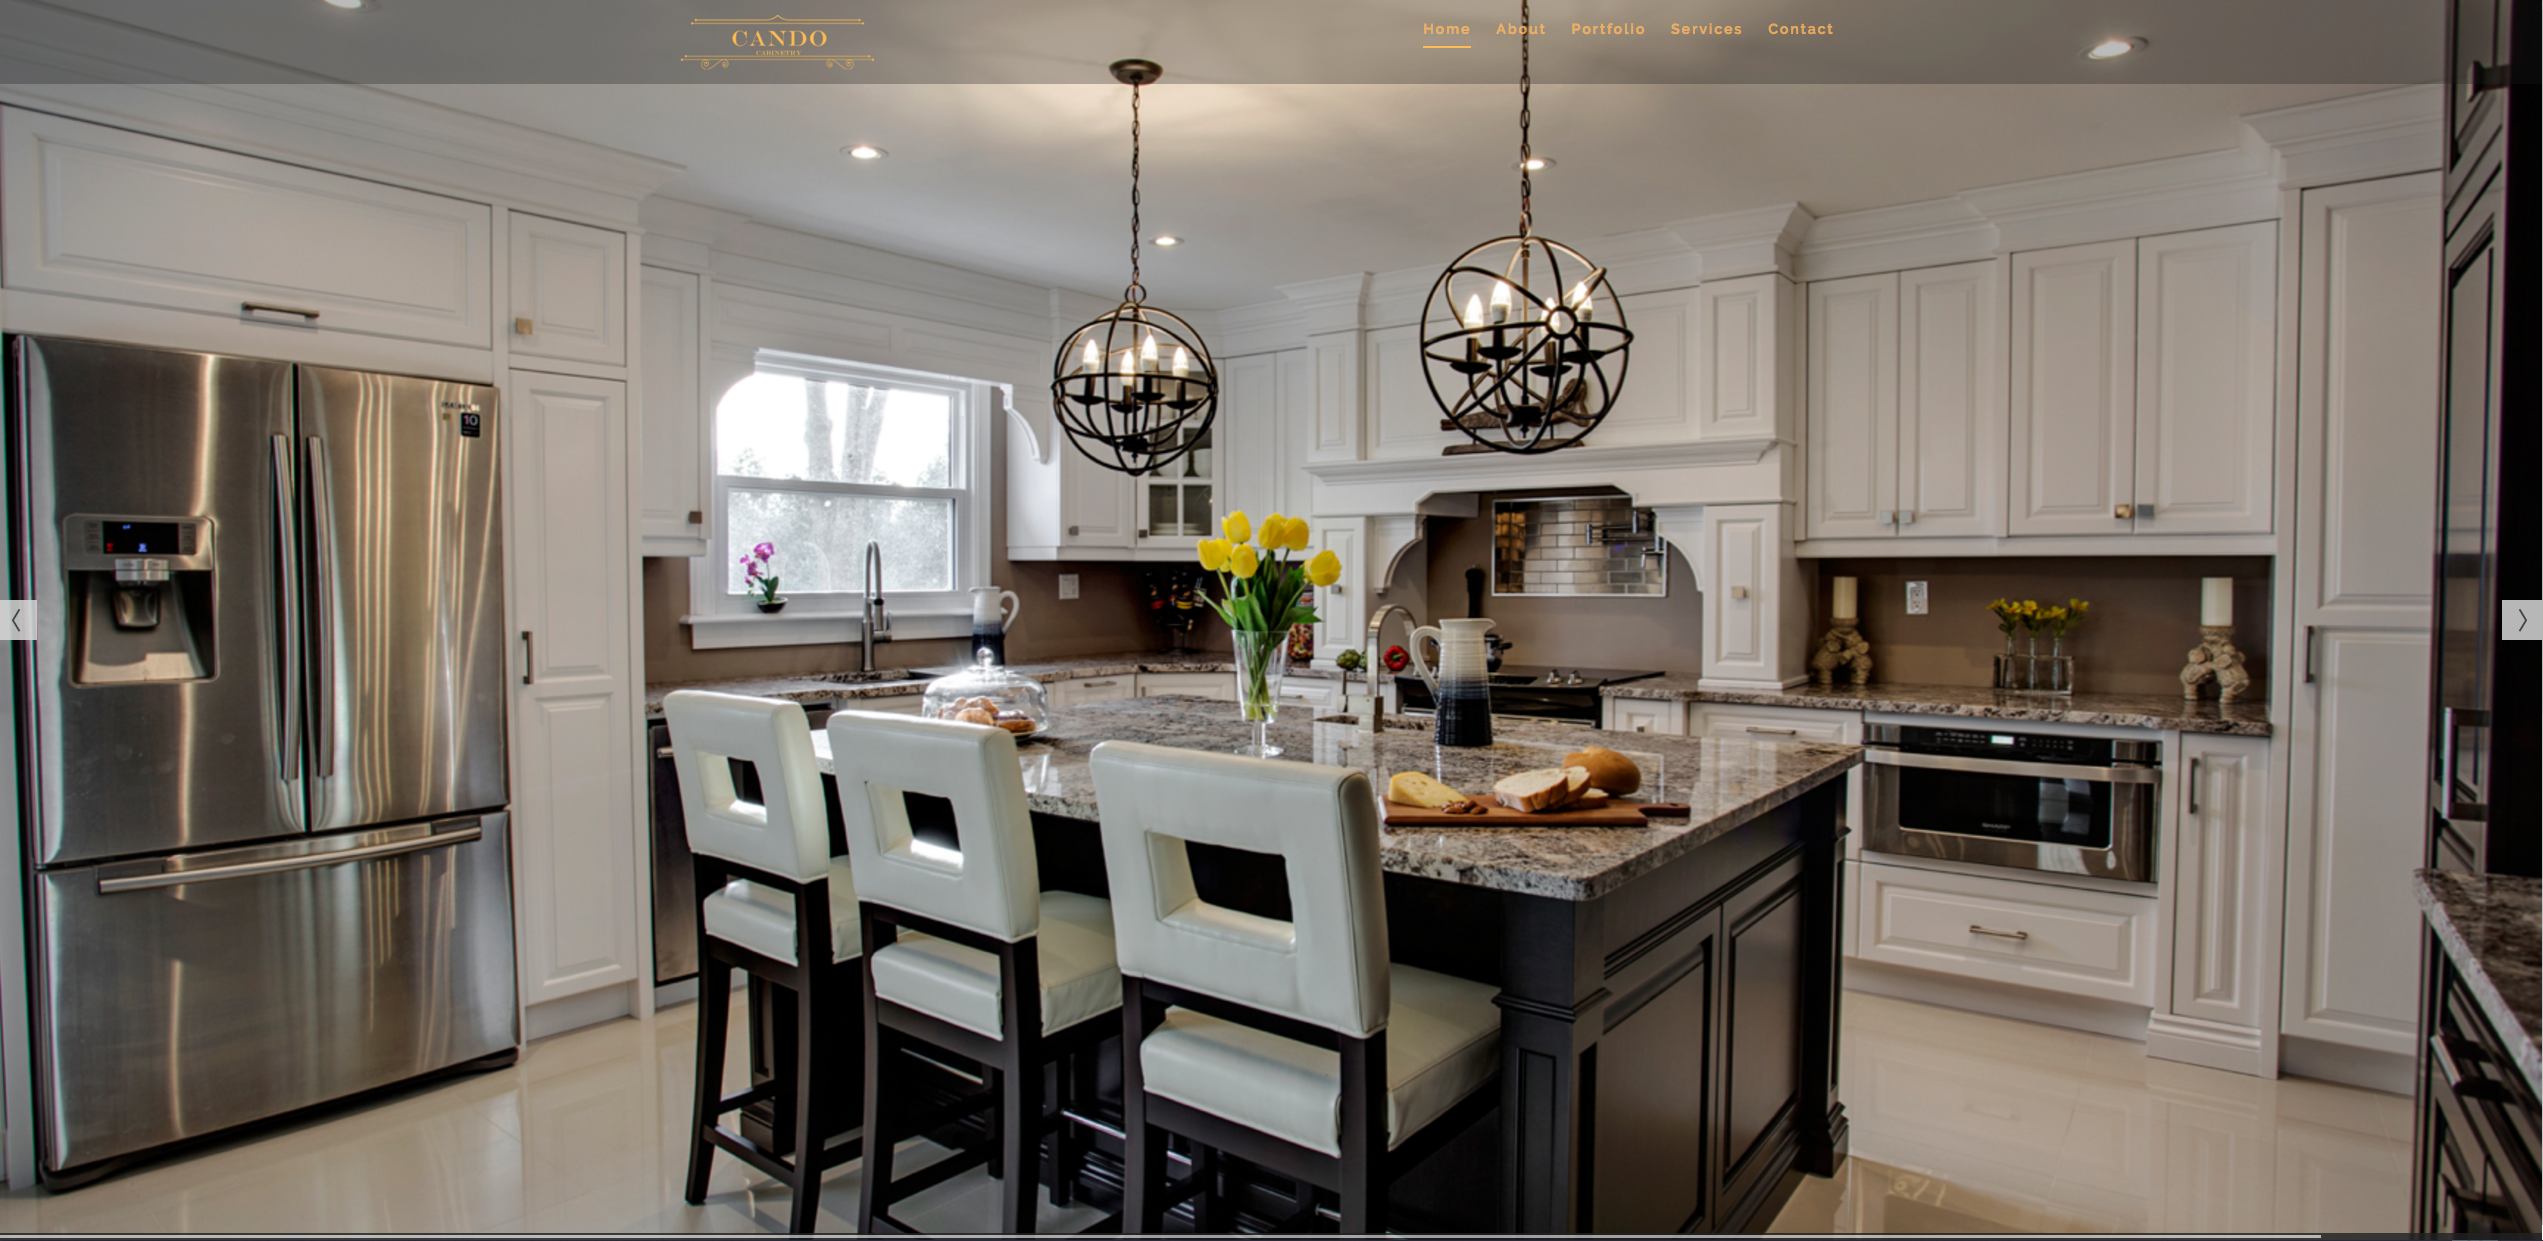 Cando cabinetry website